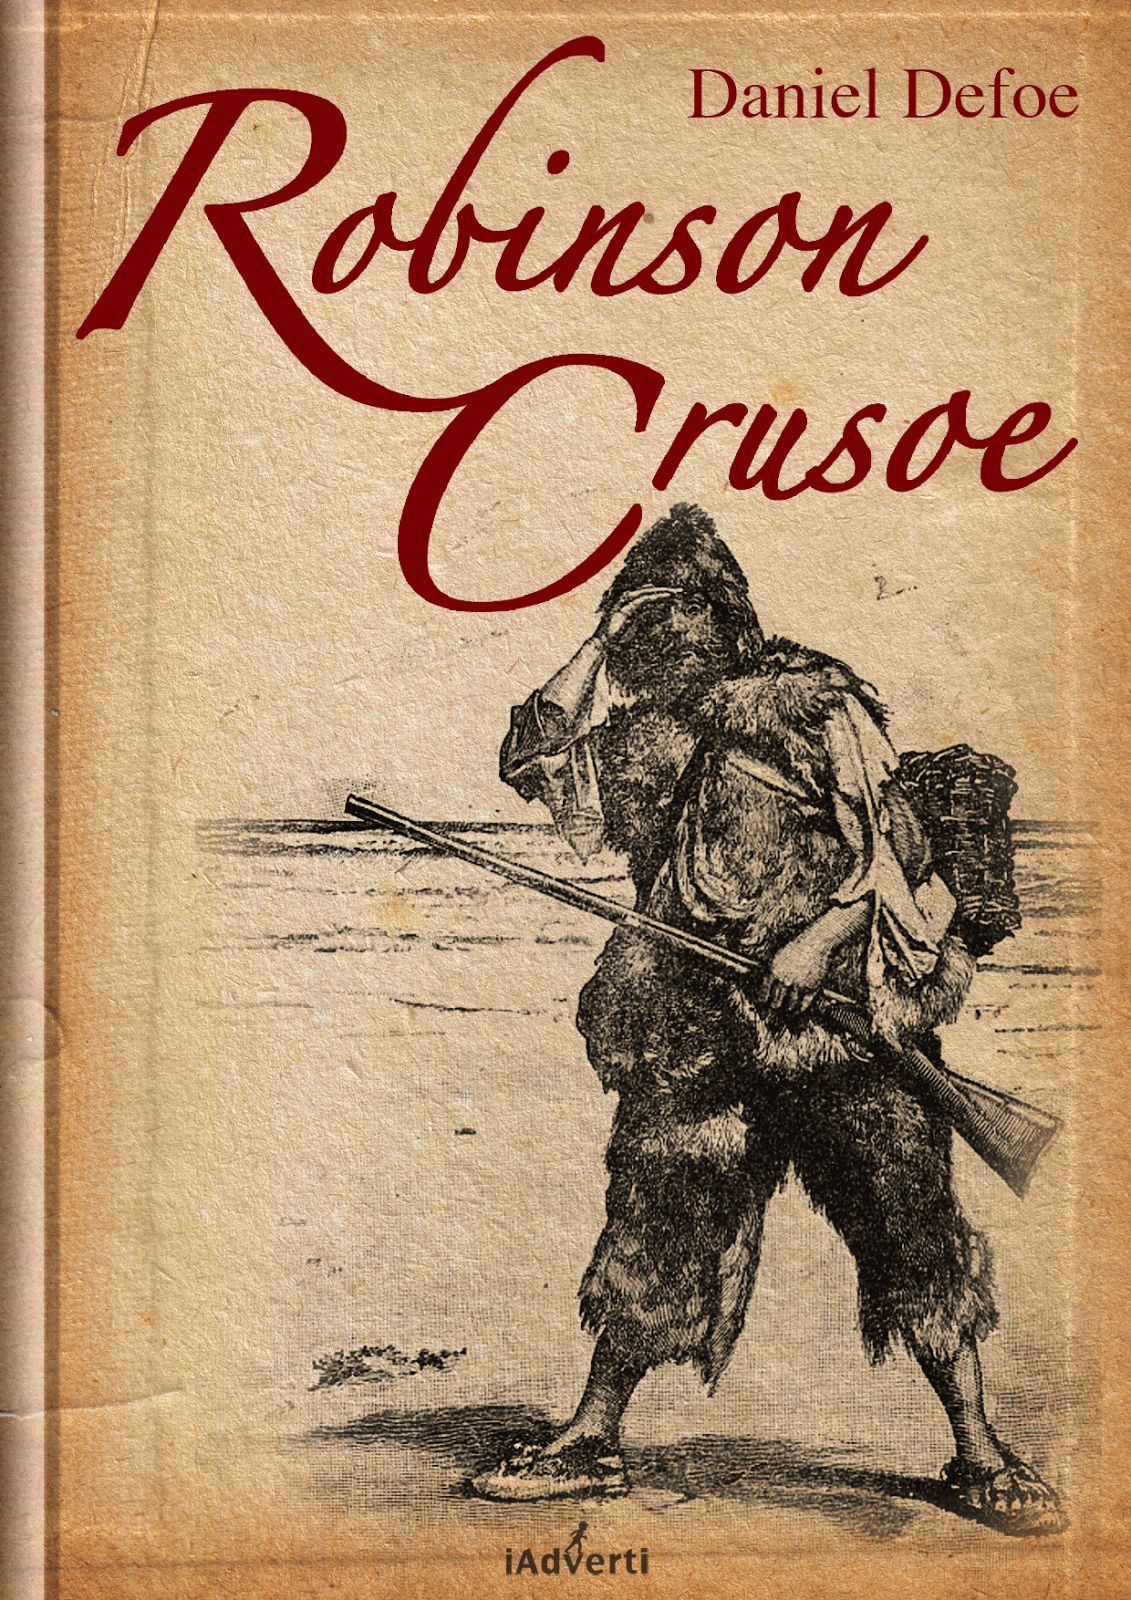 a review of the novel robinson crusoe by daniel defoe Robinson crusoe ebook: daniel defoe: amazon our titles contain an interactive table of contents for ease of navigation of the book average customer review.